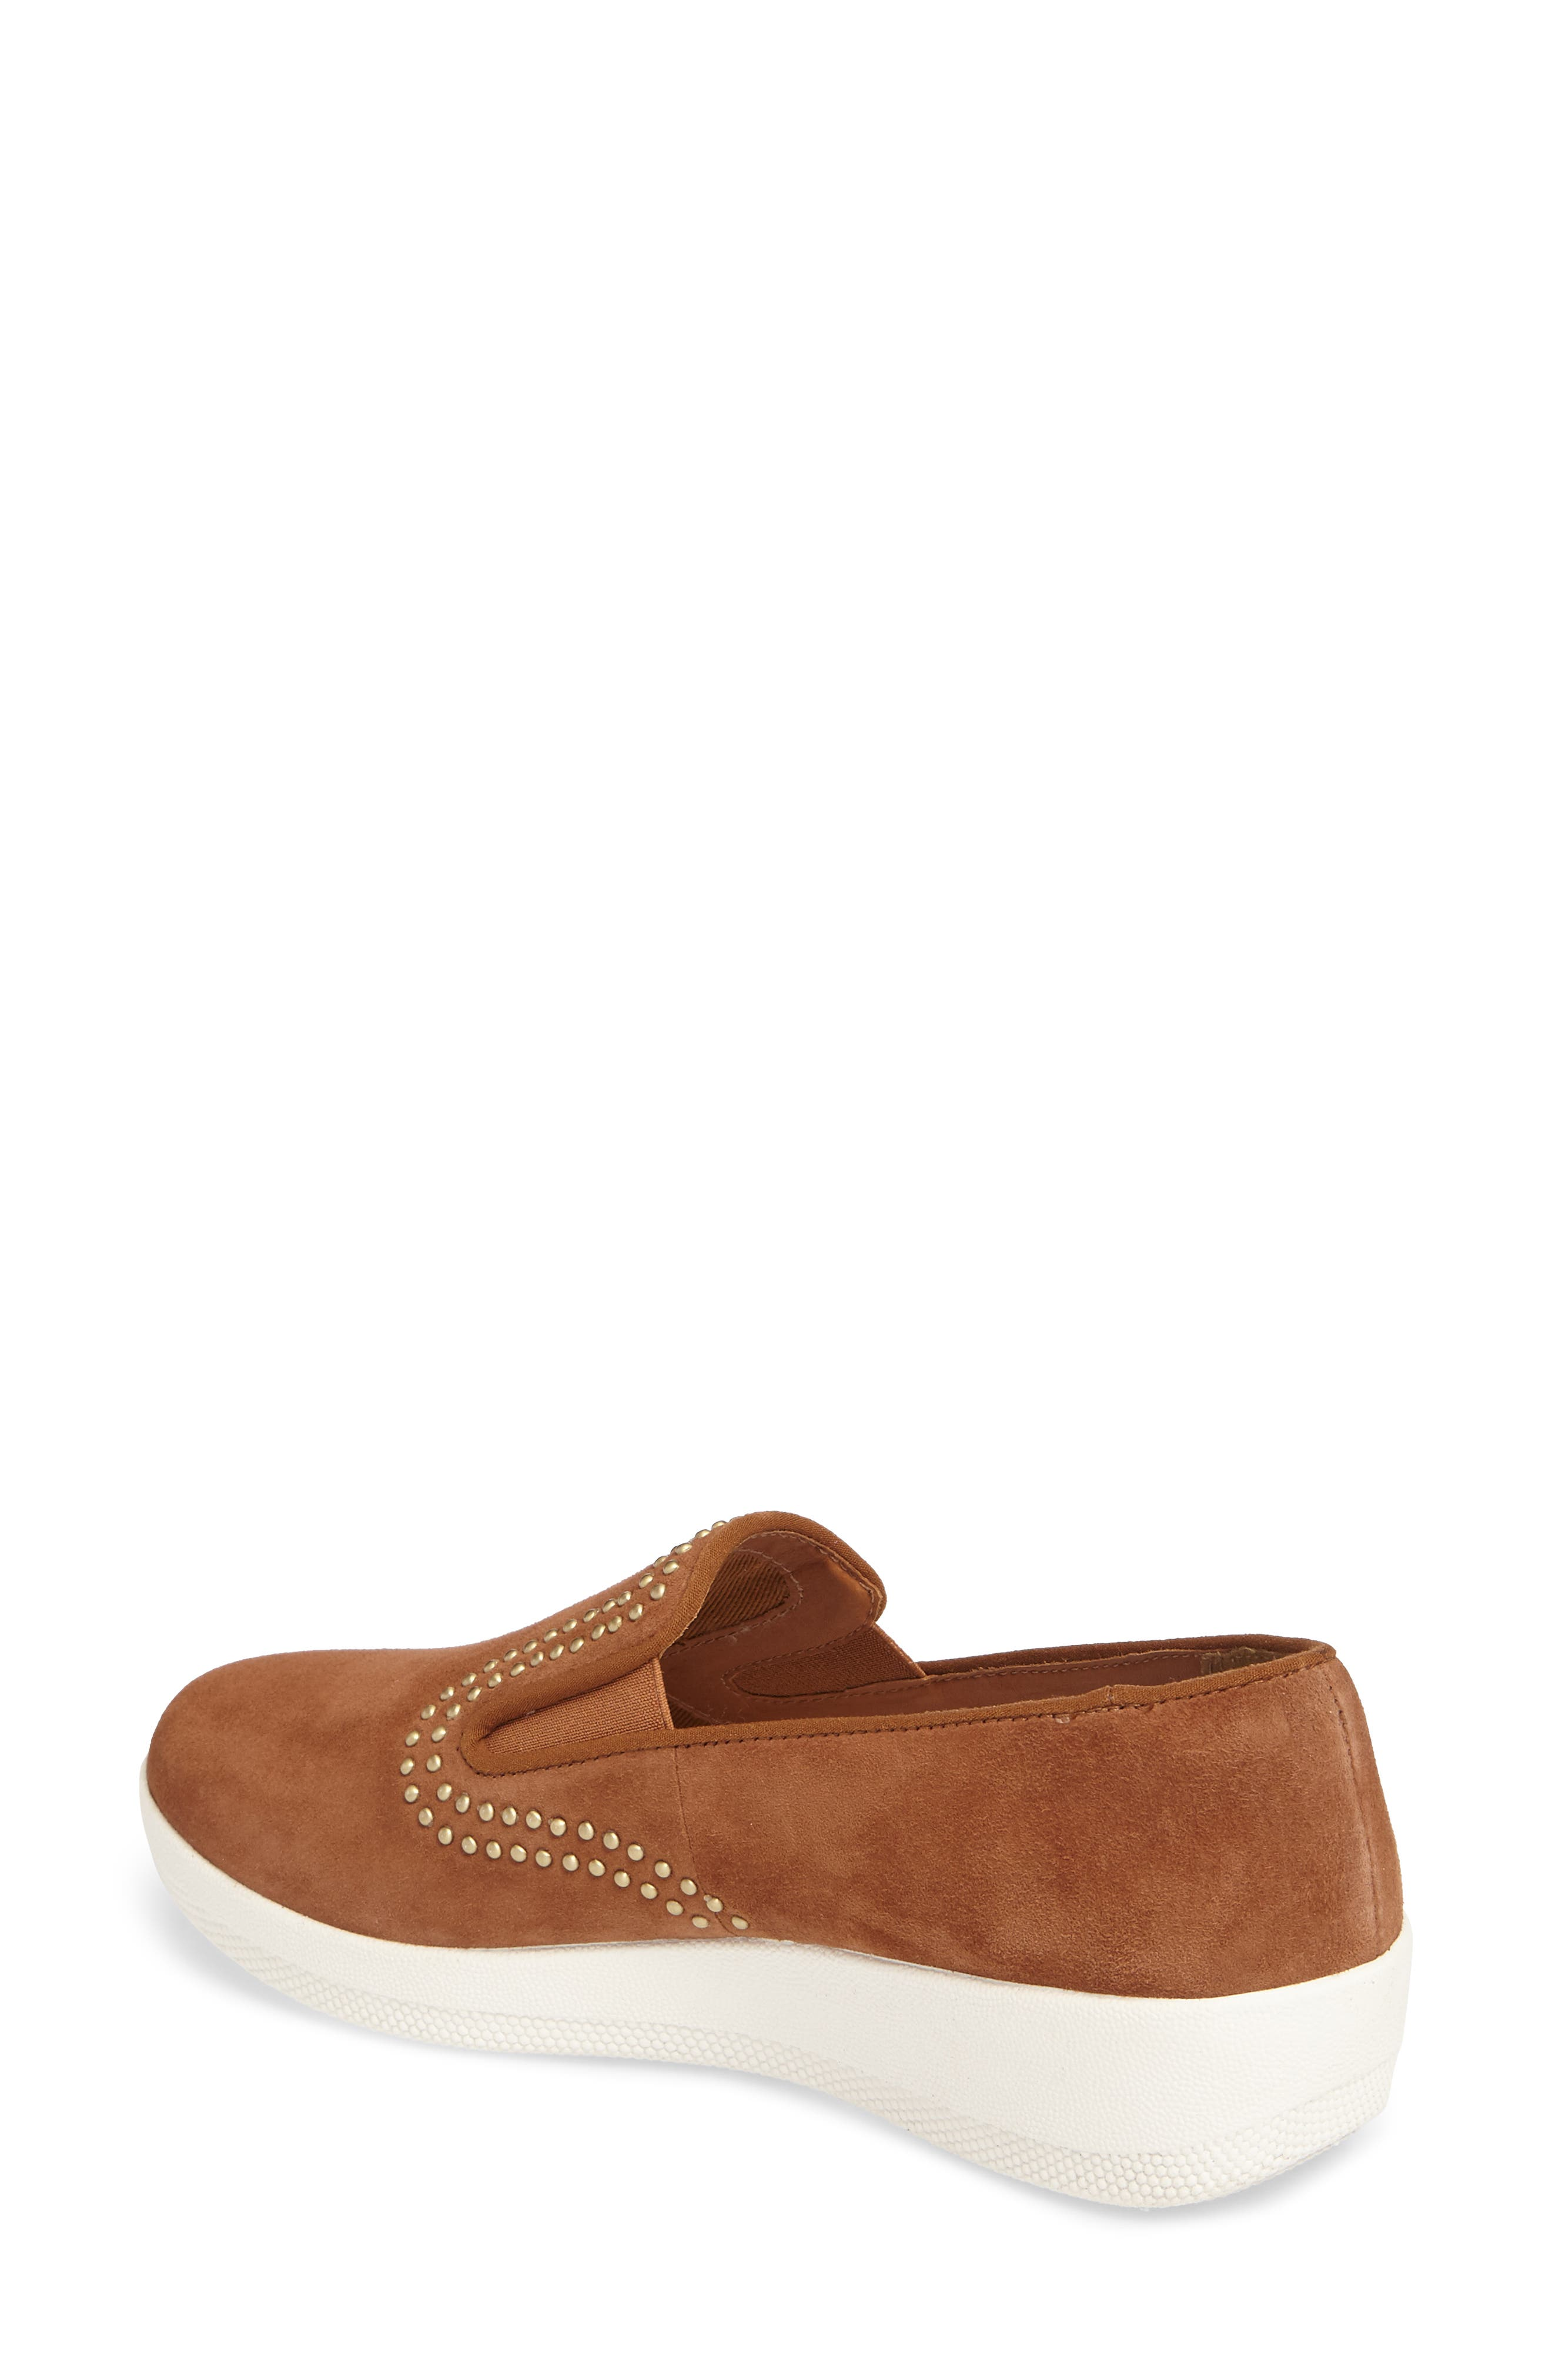 Superskate Studded Wedge Loafer,                             Alternate thumbnail 2, color,                             Tan Faux Suede